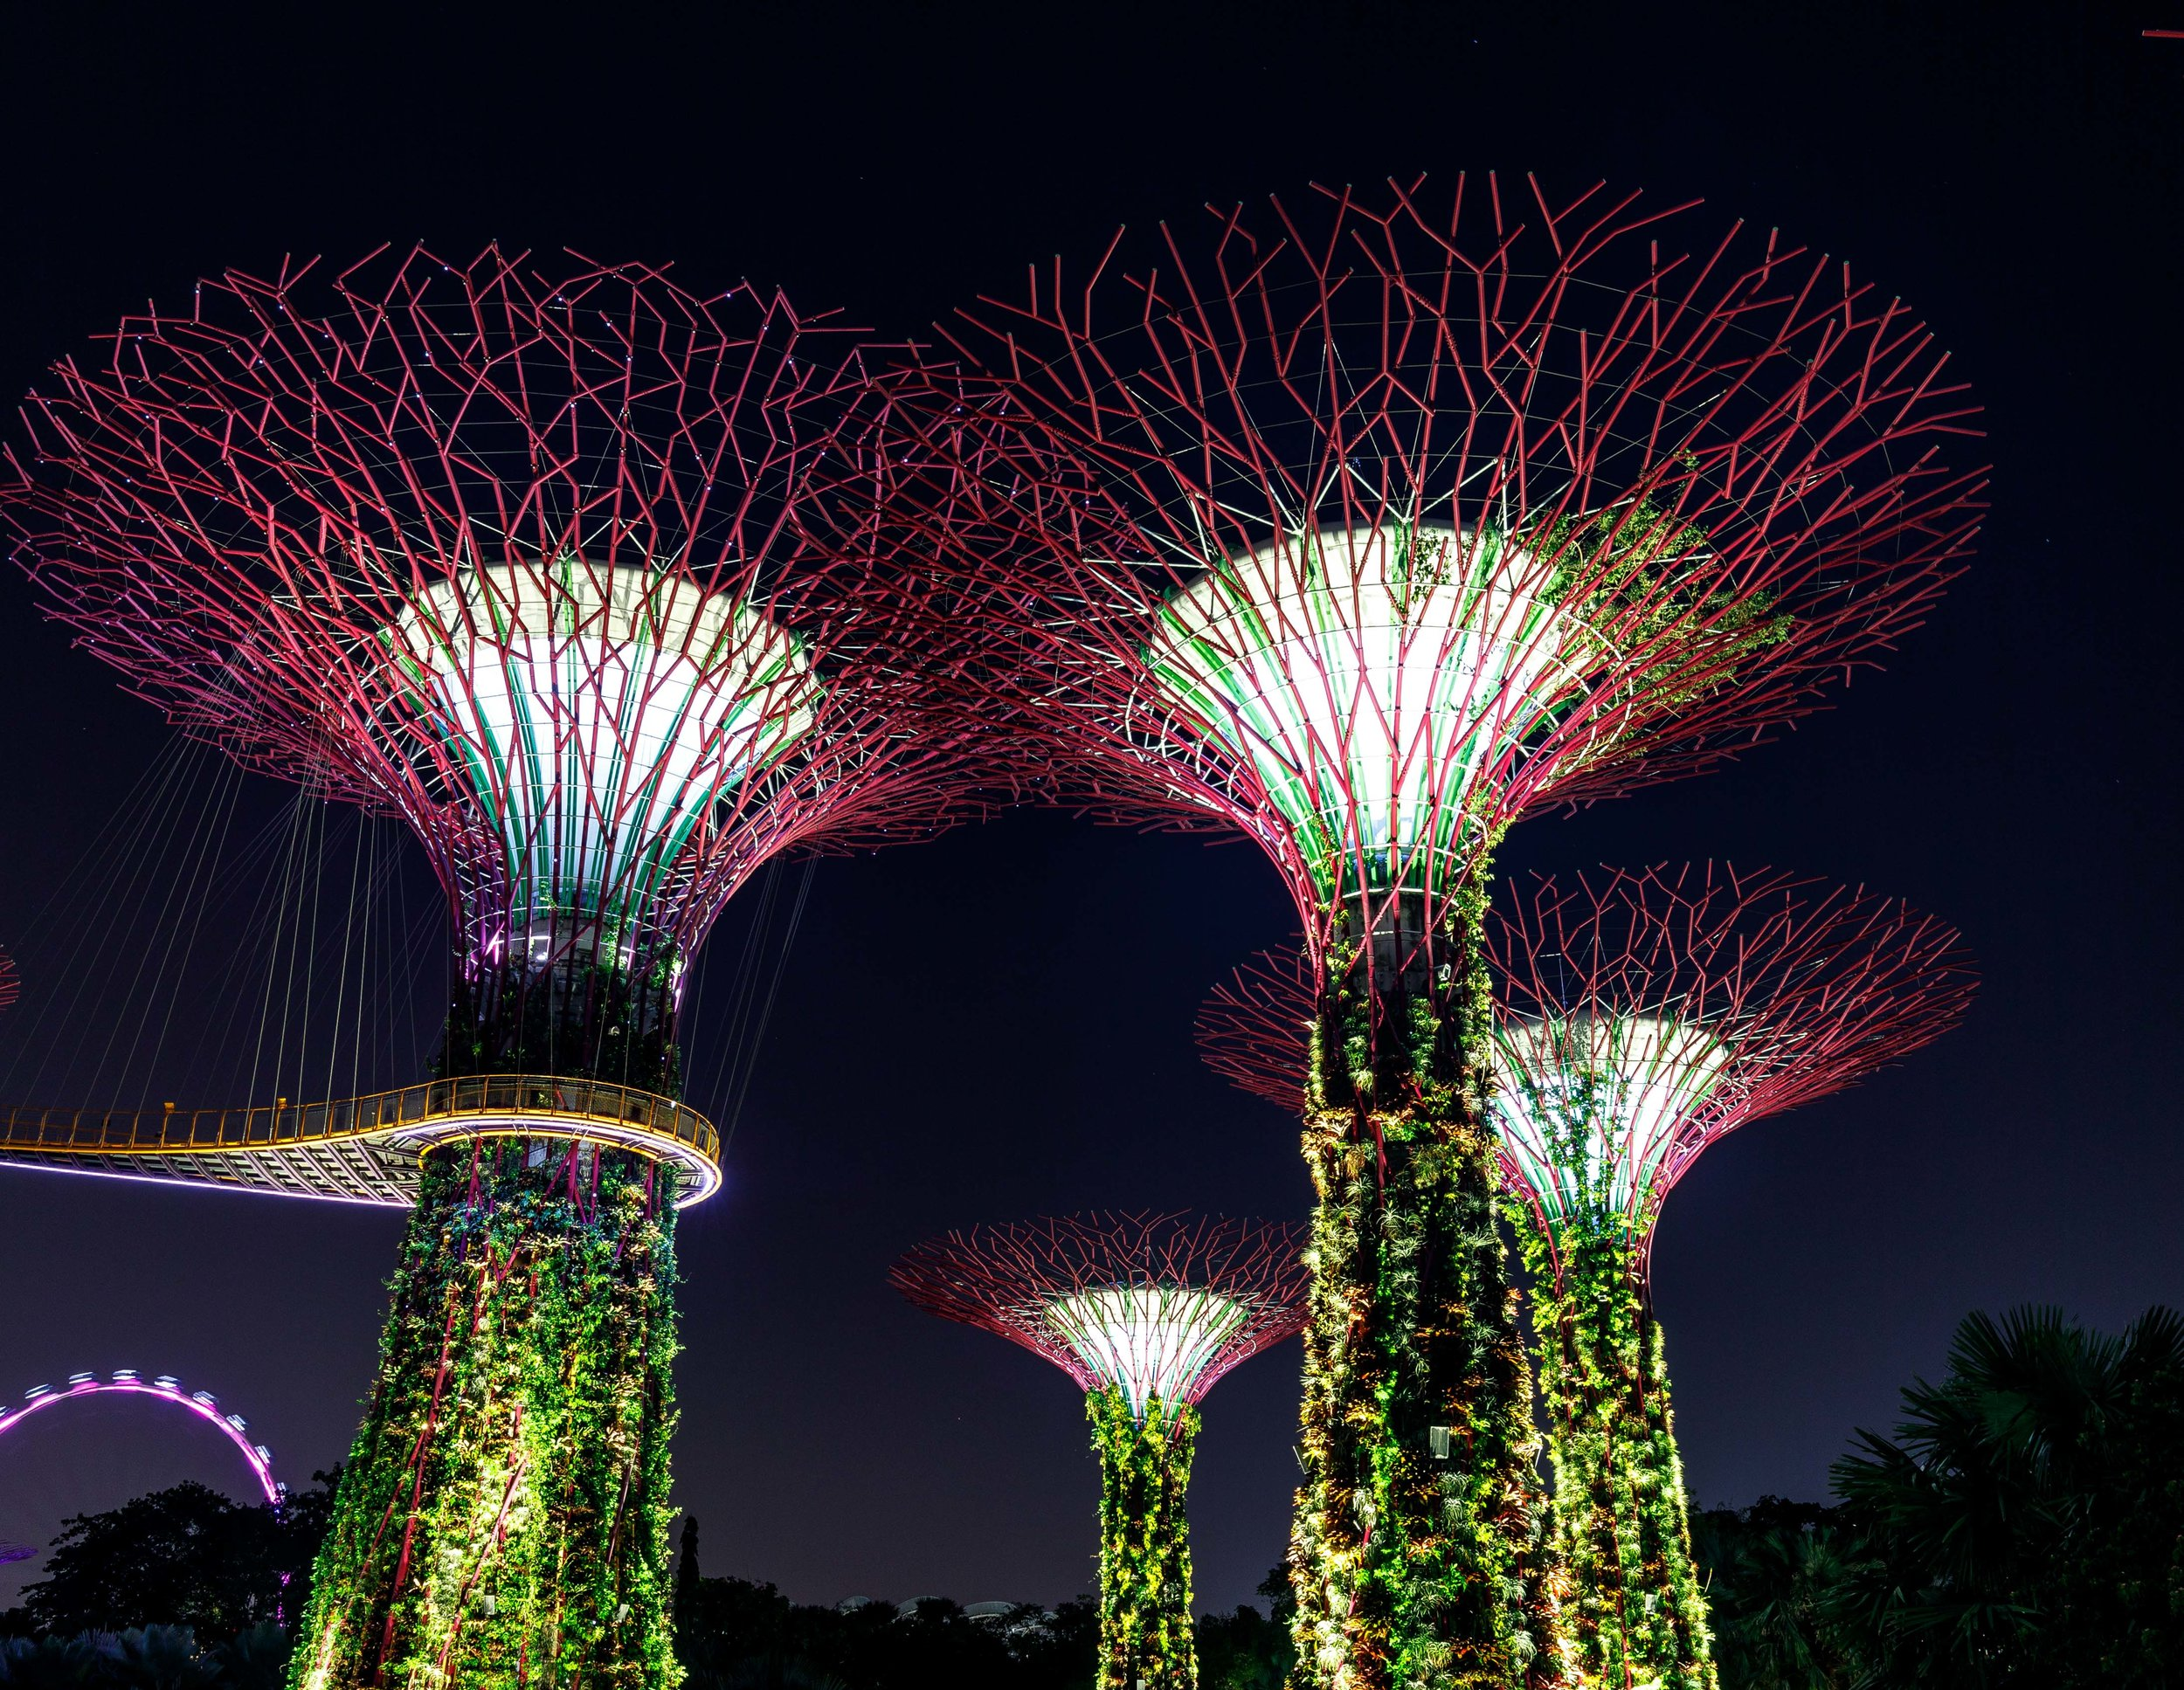 The super trees at Gardens by the Bay - Singapore